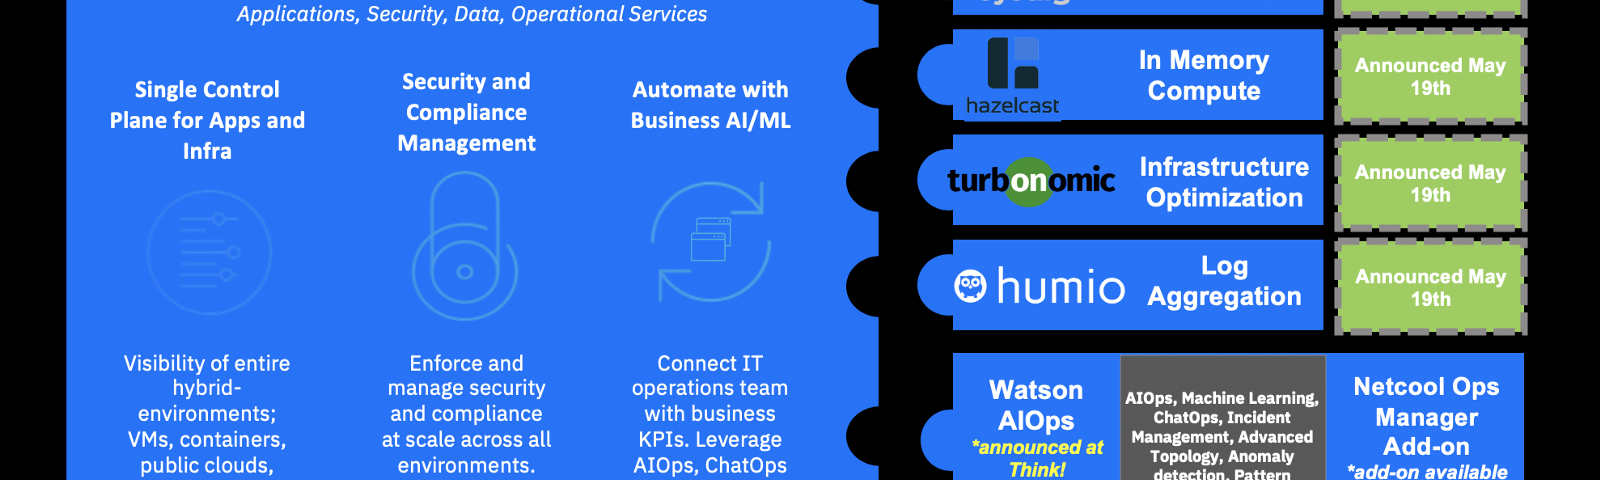 IBM Cloud Pak for Multicloud Management with partner products: Sysdig, Hazelcast, Turbonomic, and Humio.